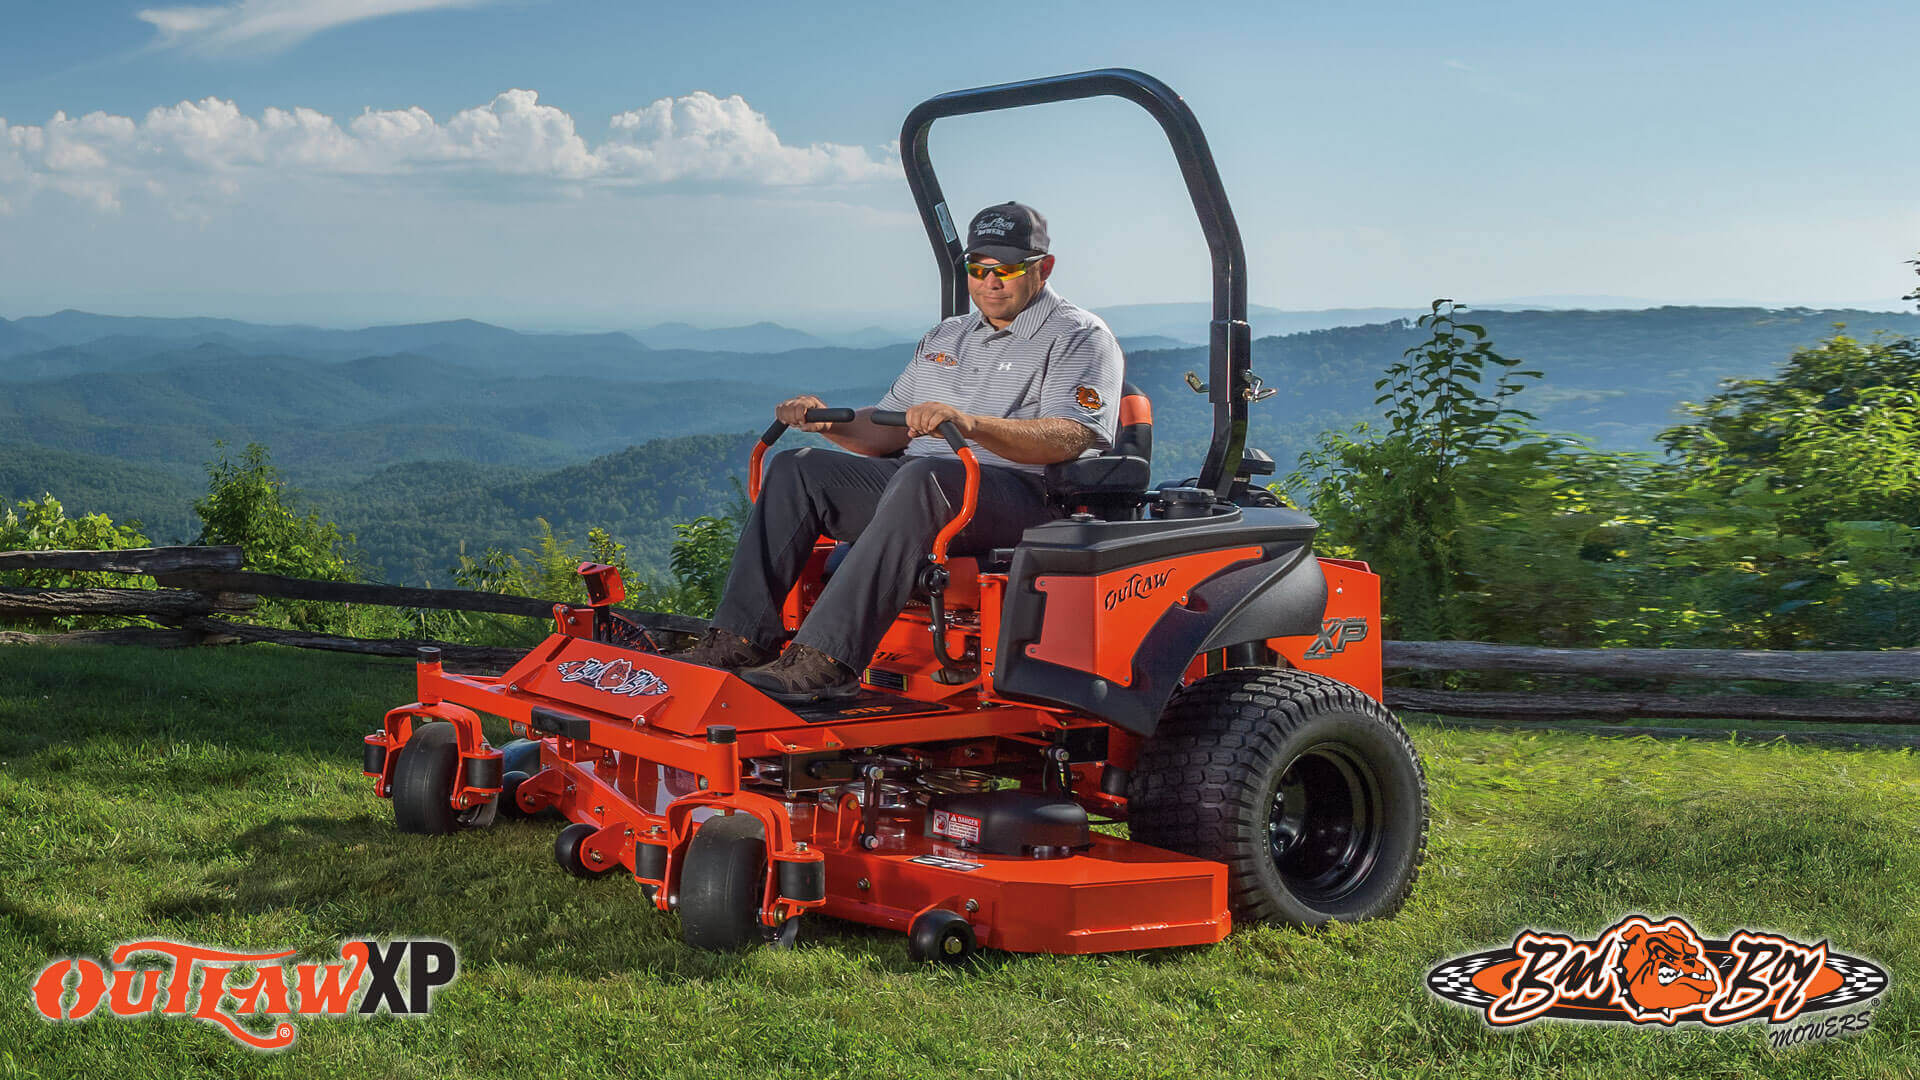 Bad Boy Outlaw XP 2016 Zero Turn Mower